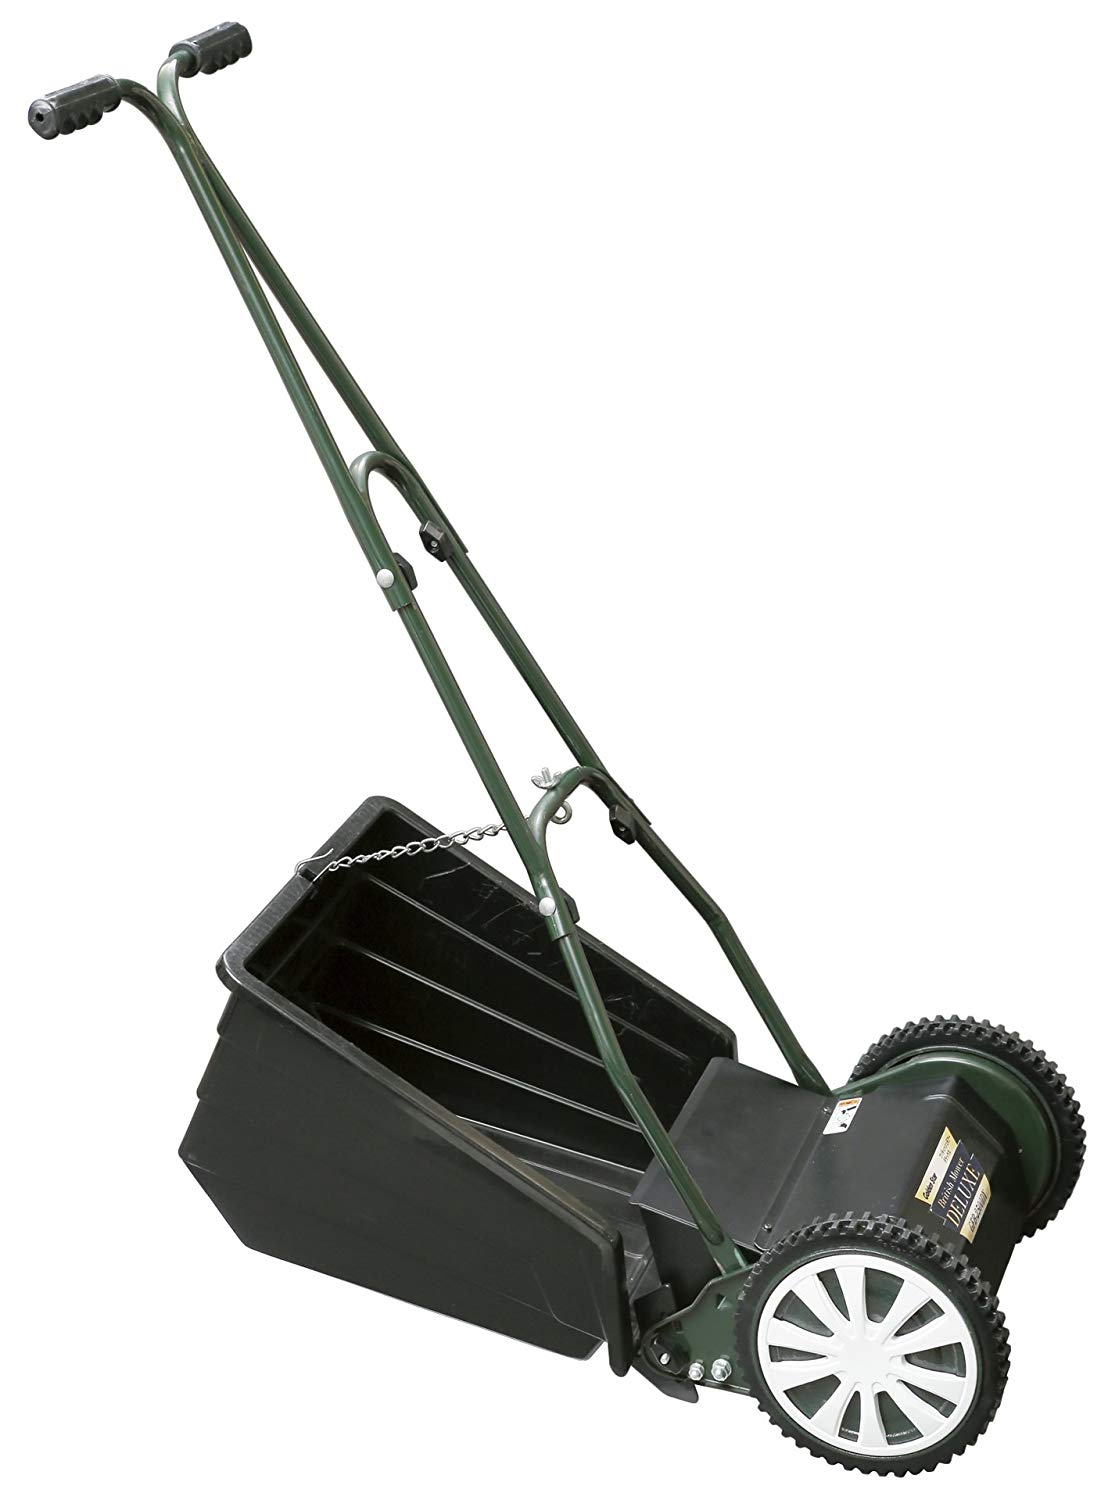 Cheap Rover Mower Manual Find Deals On Line At Diagram And Parts List For Honda Walkbehindlawnmowerparts Model Get Quotations Kinboshi British Dx Lawn Gfb 2500dx